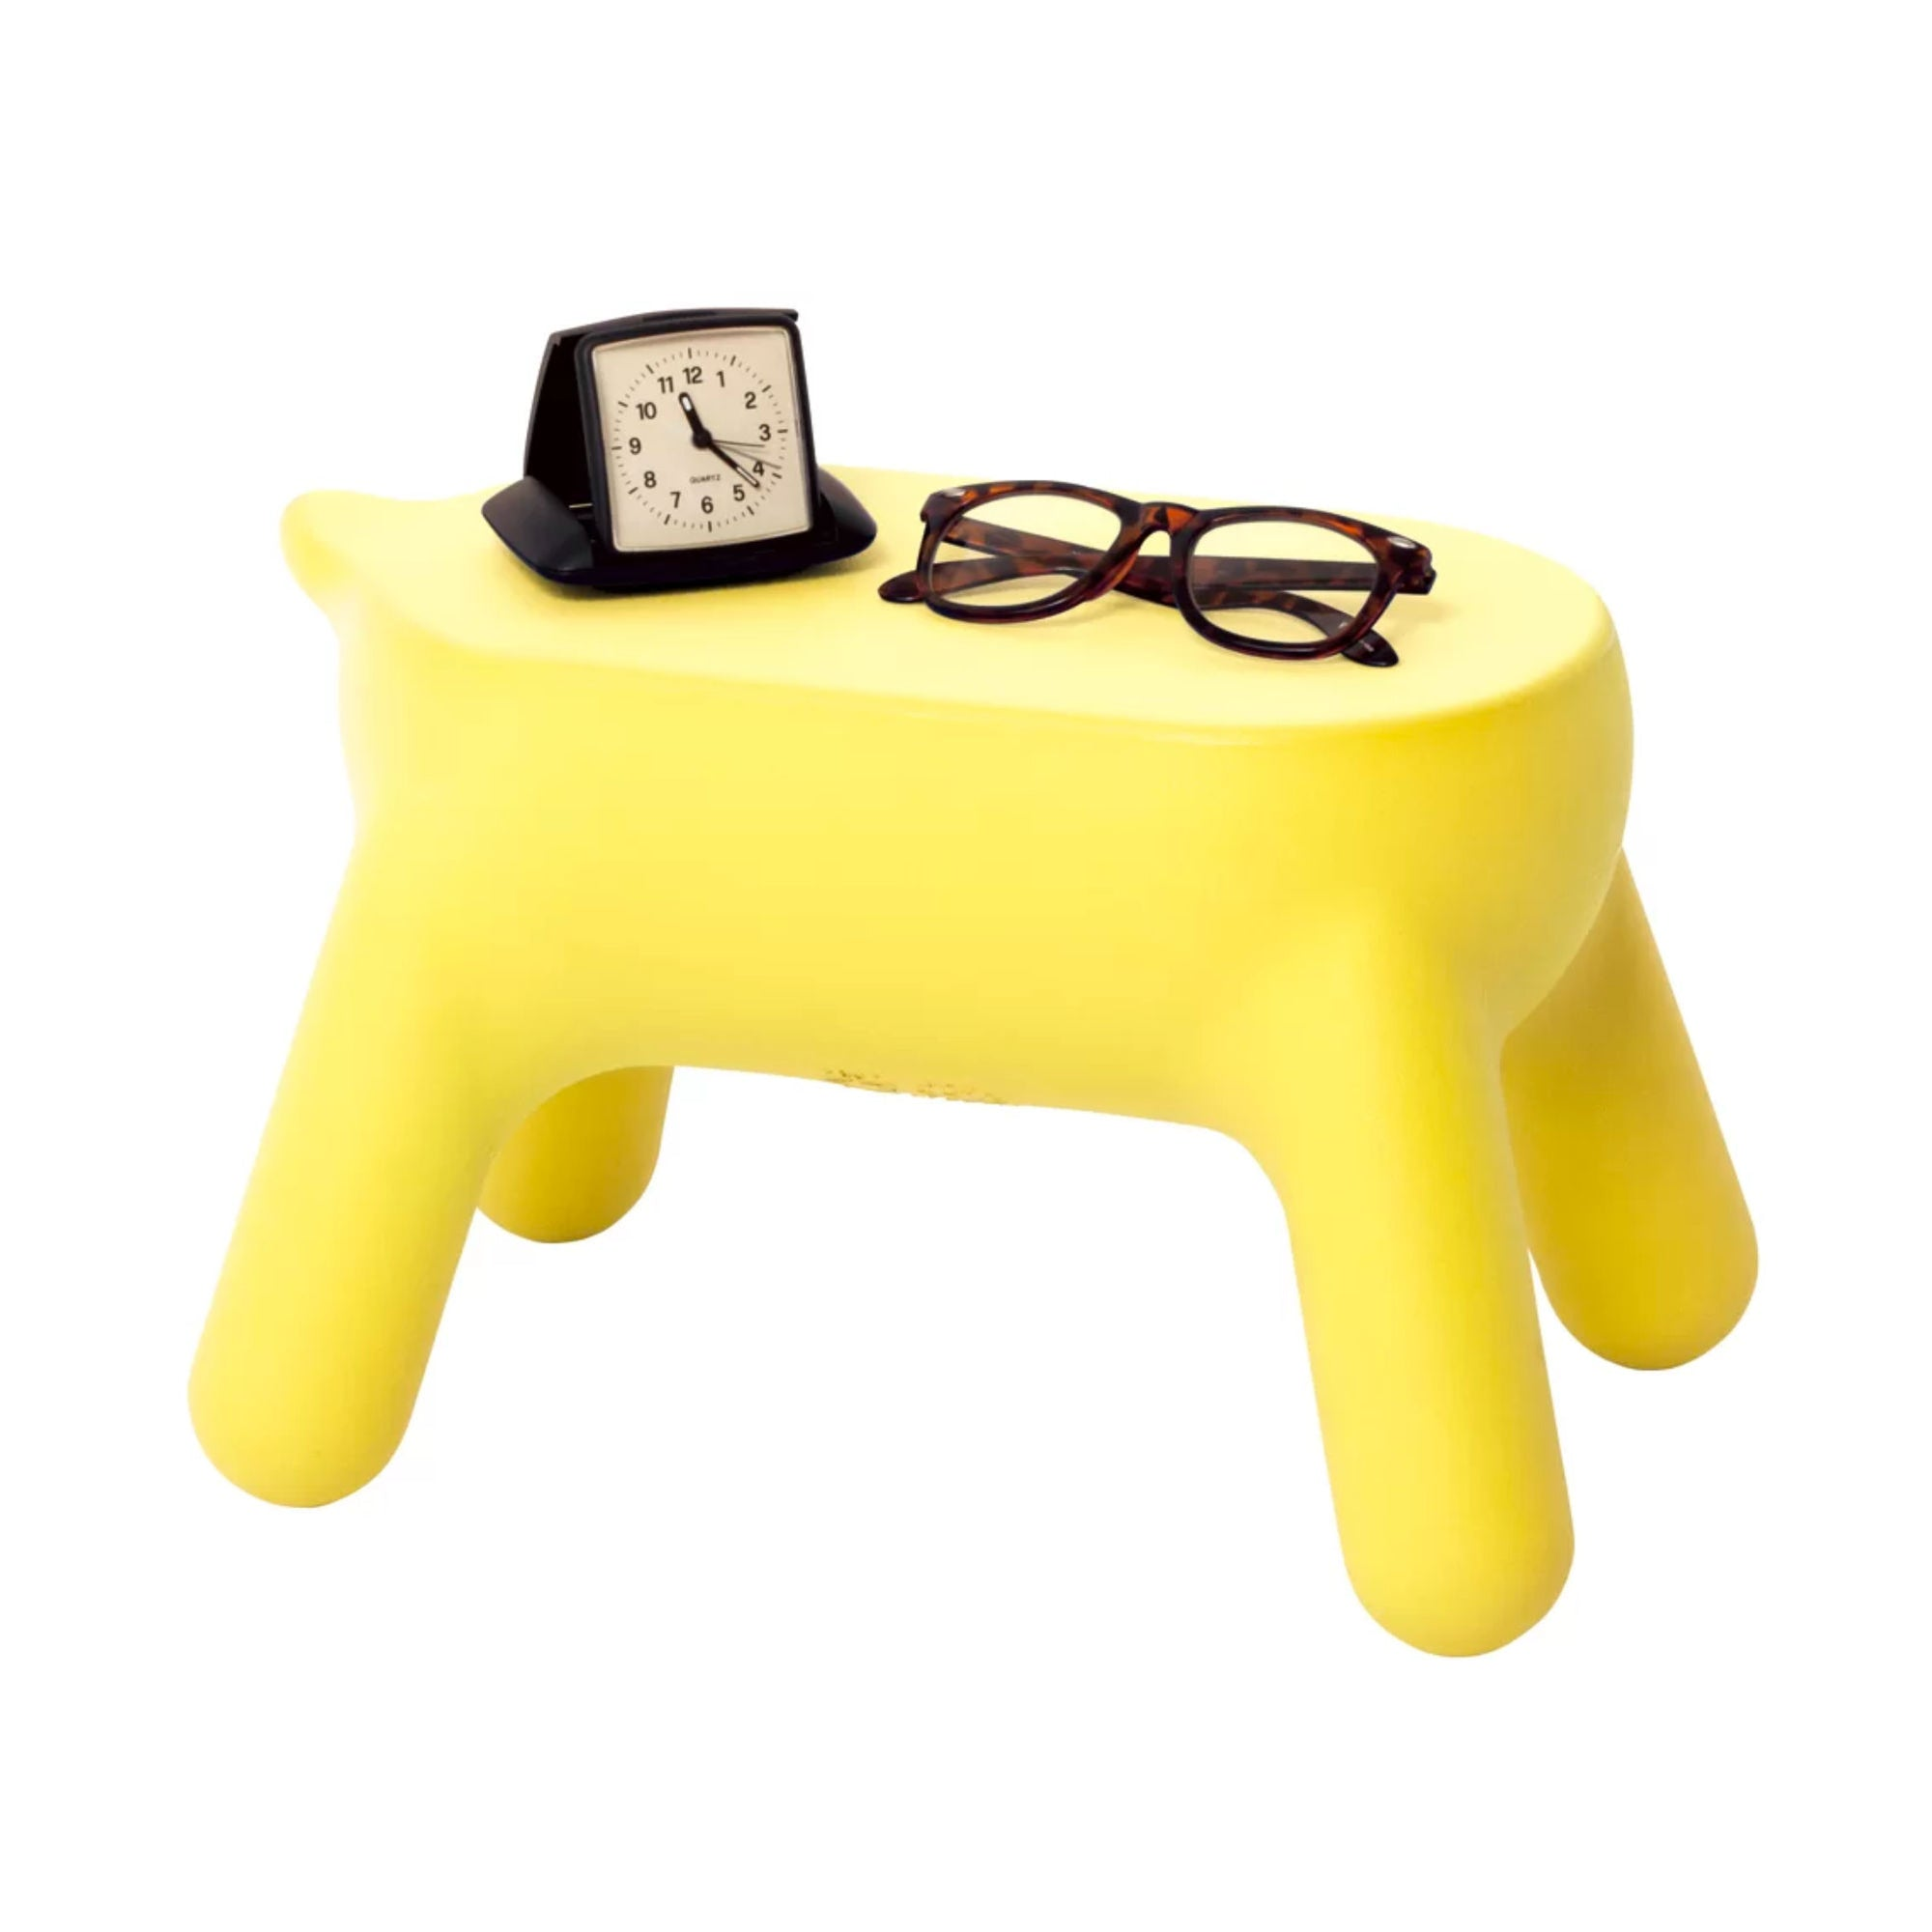 Hasegawa Purill step stool, lemon yellow